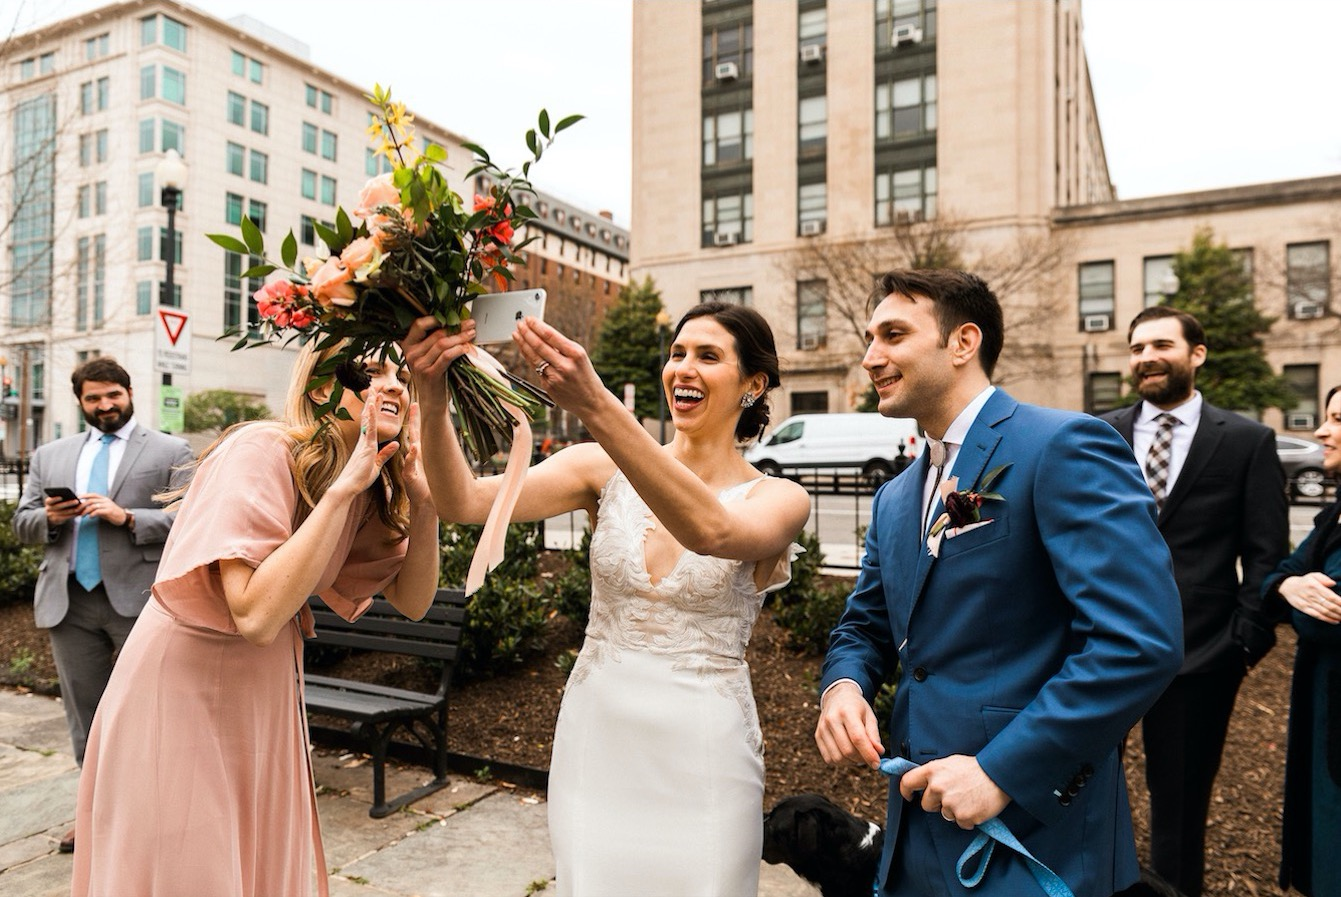 What You Should Know when Planning a Microwedding